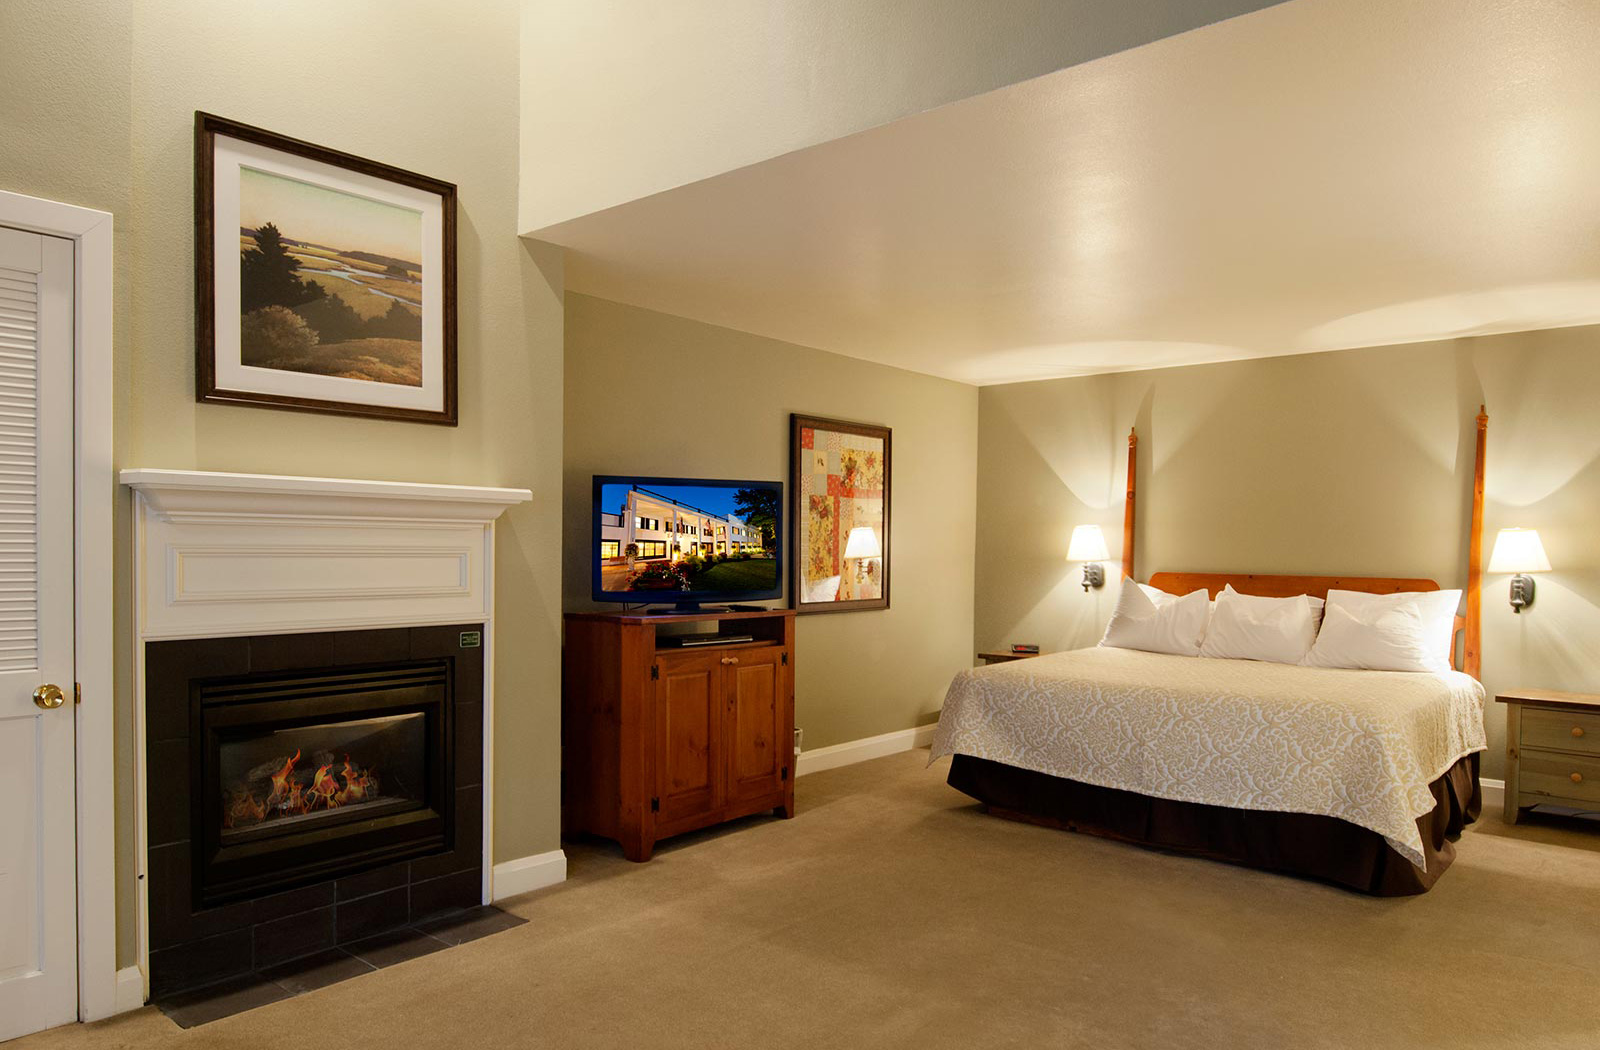 Spacious luxury suite guest room with king bed, gas fireplace and tv at our Homestead Resort in Heber City